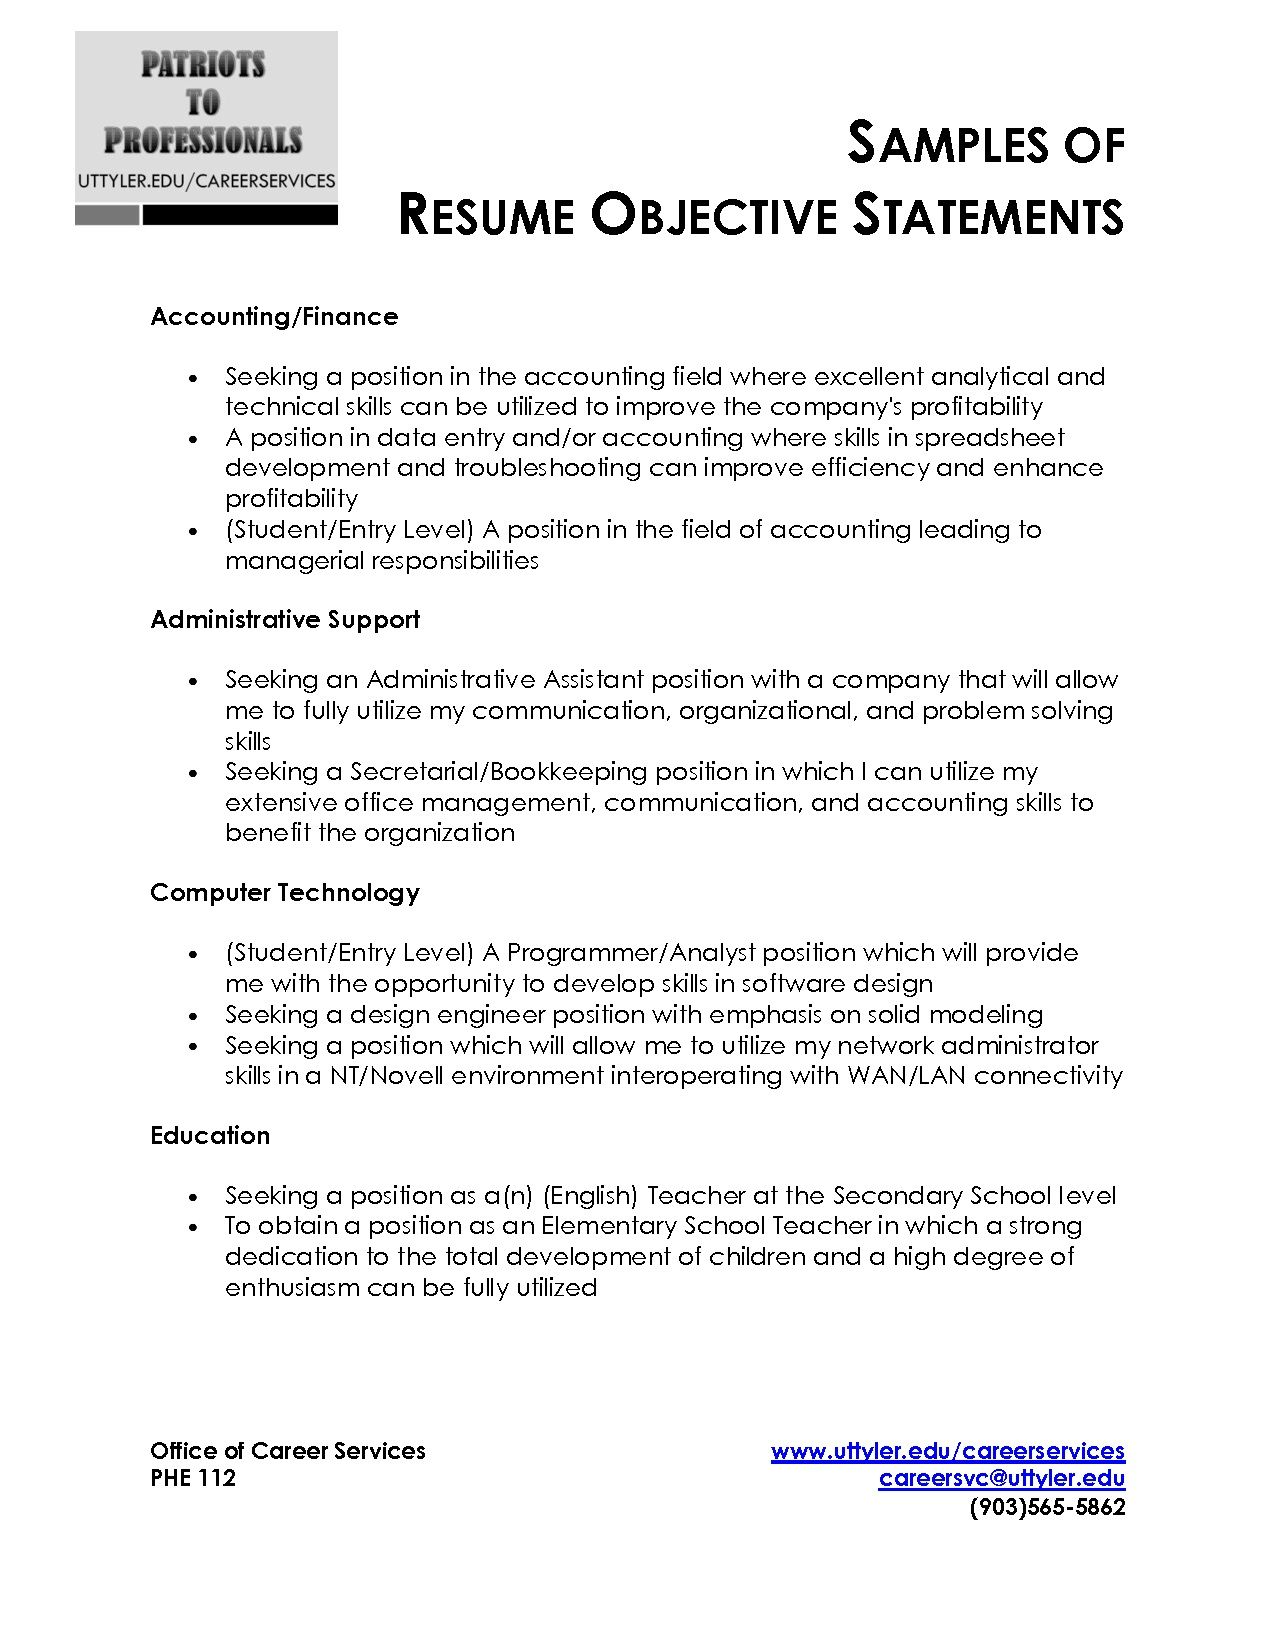 Attractive Sample Resume Objective Statement   (adsbygoogle U003d Window.adsbygoogle || []) On Strong Objective Statements